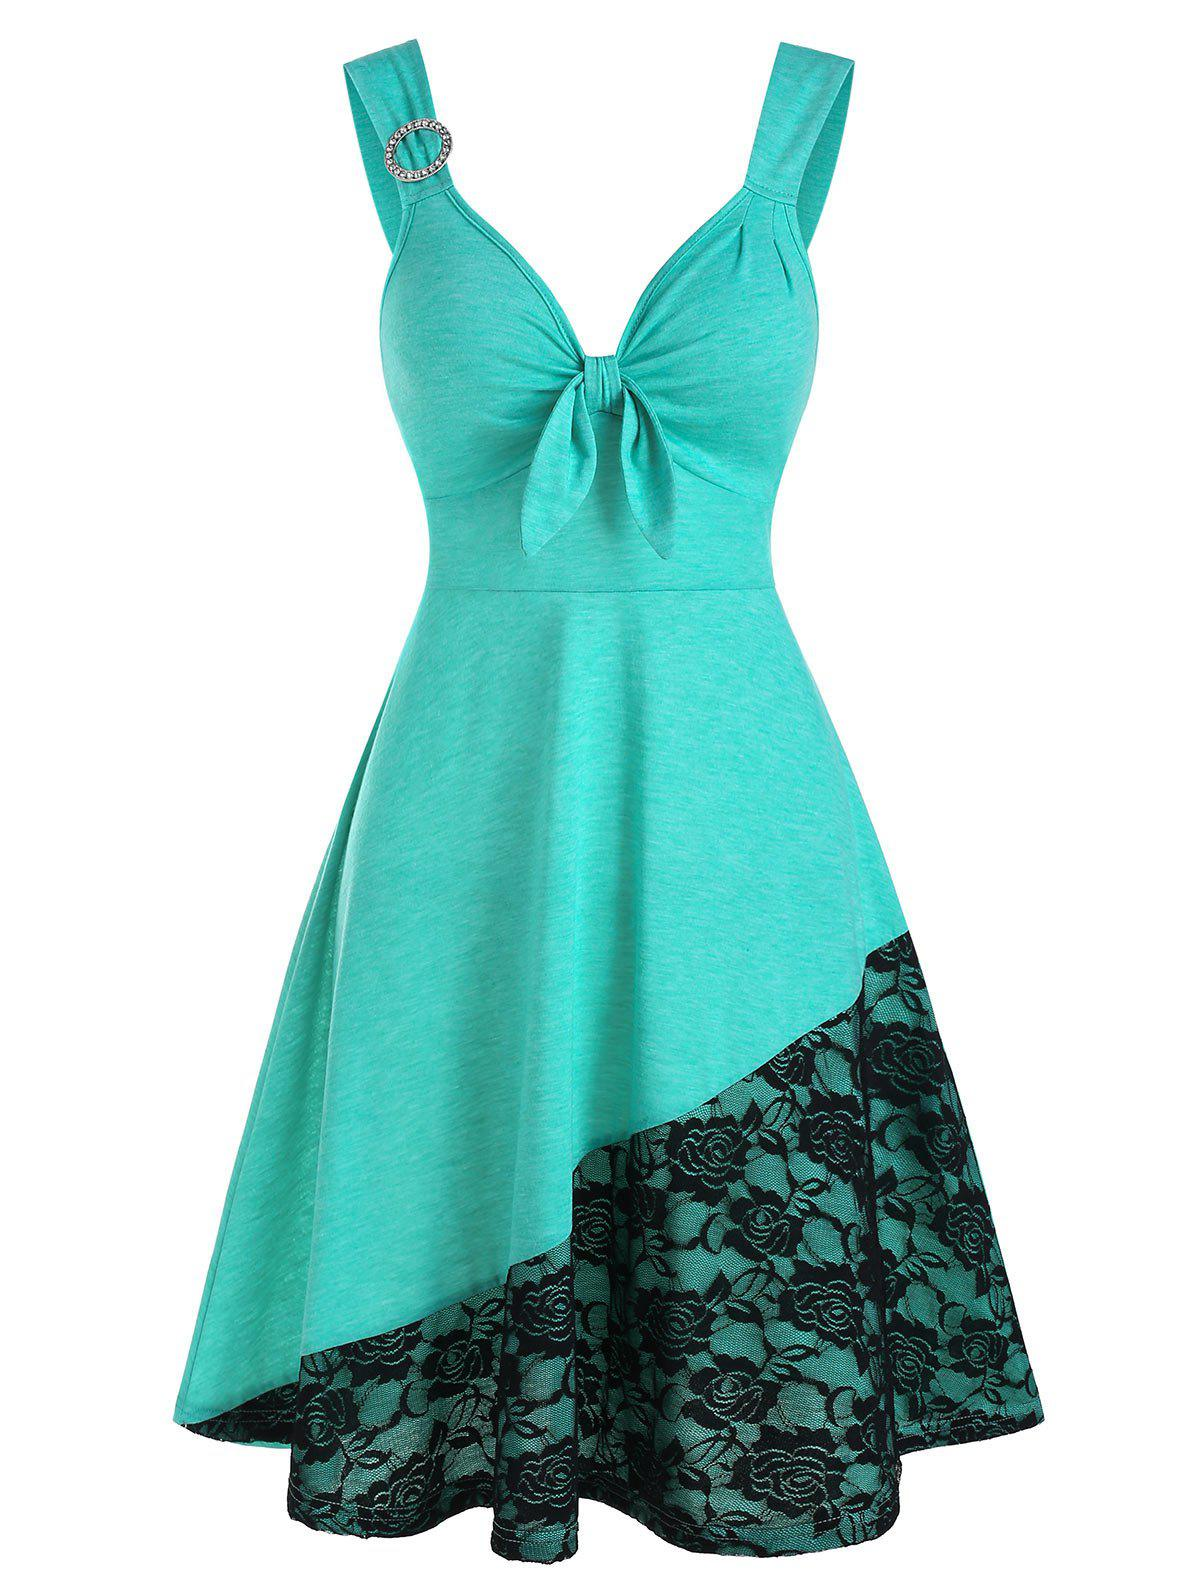 Flower Lace Panel Sleeveless O-ring Dress - AQUAMARINE L